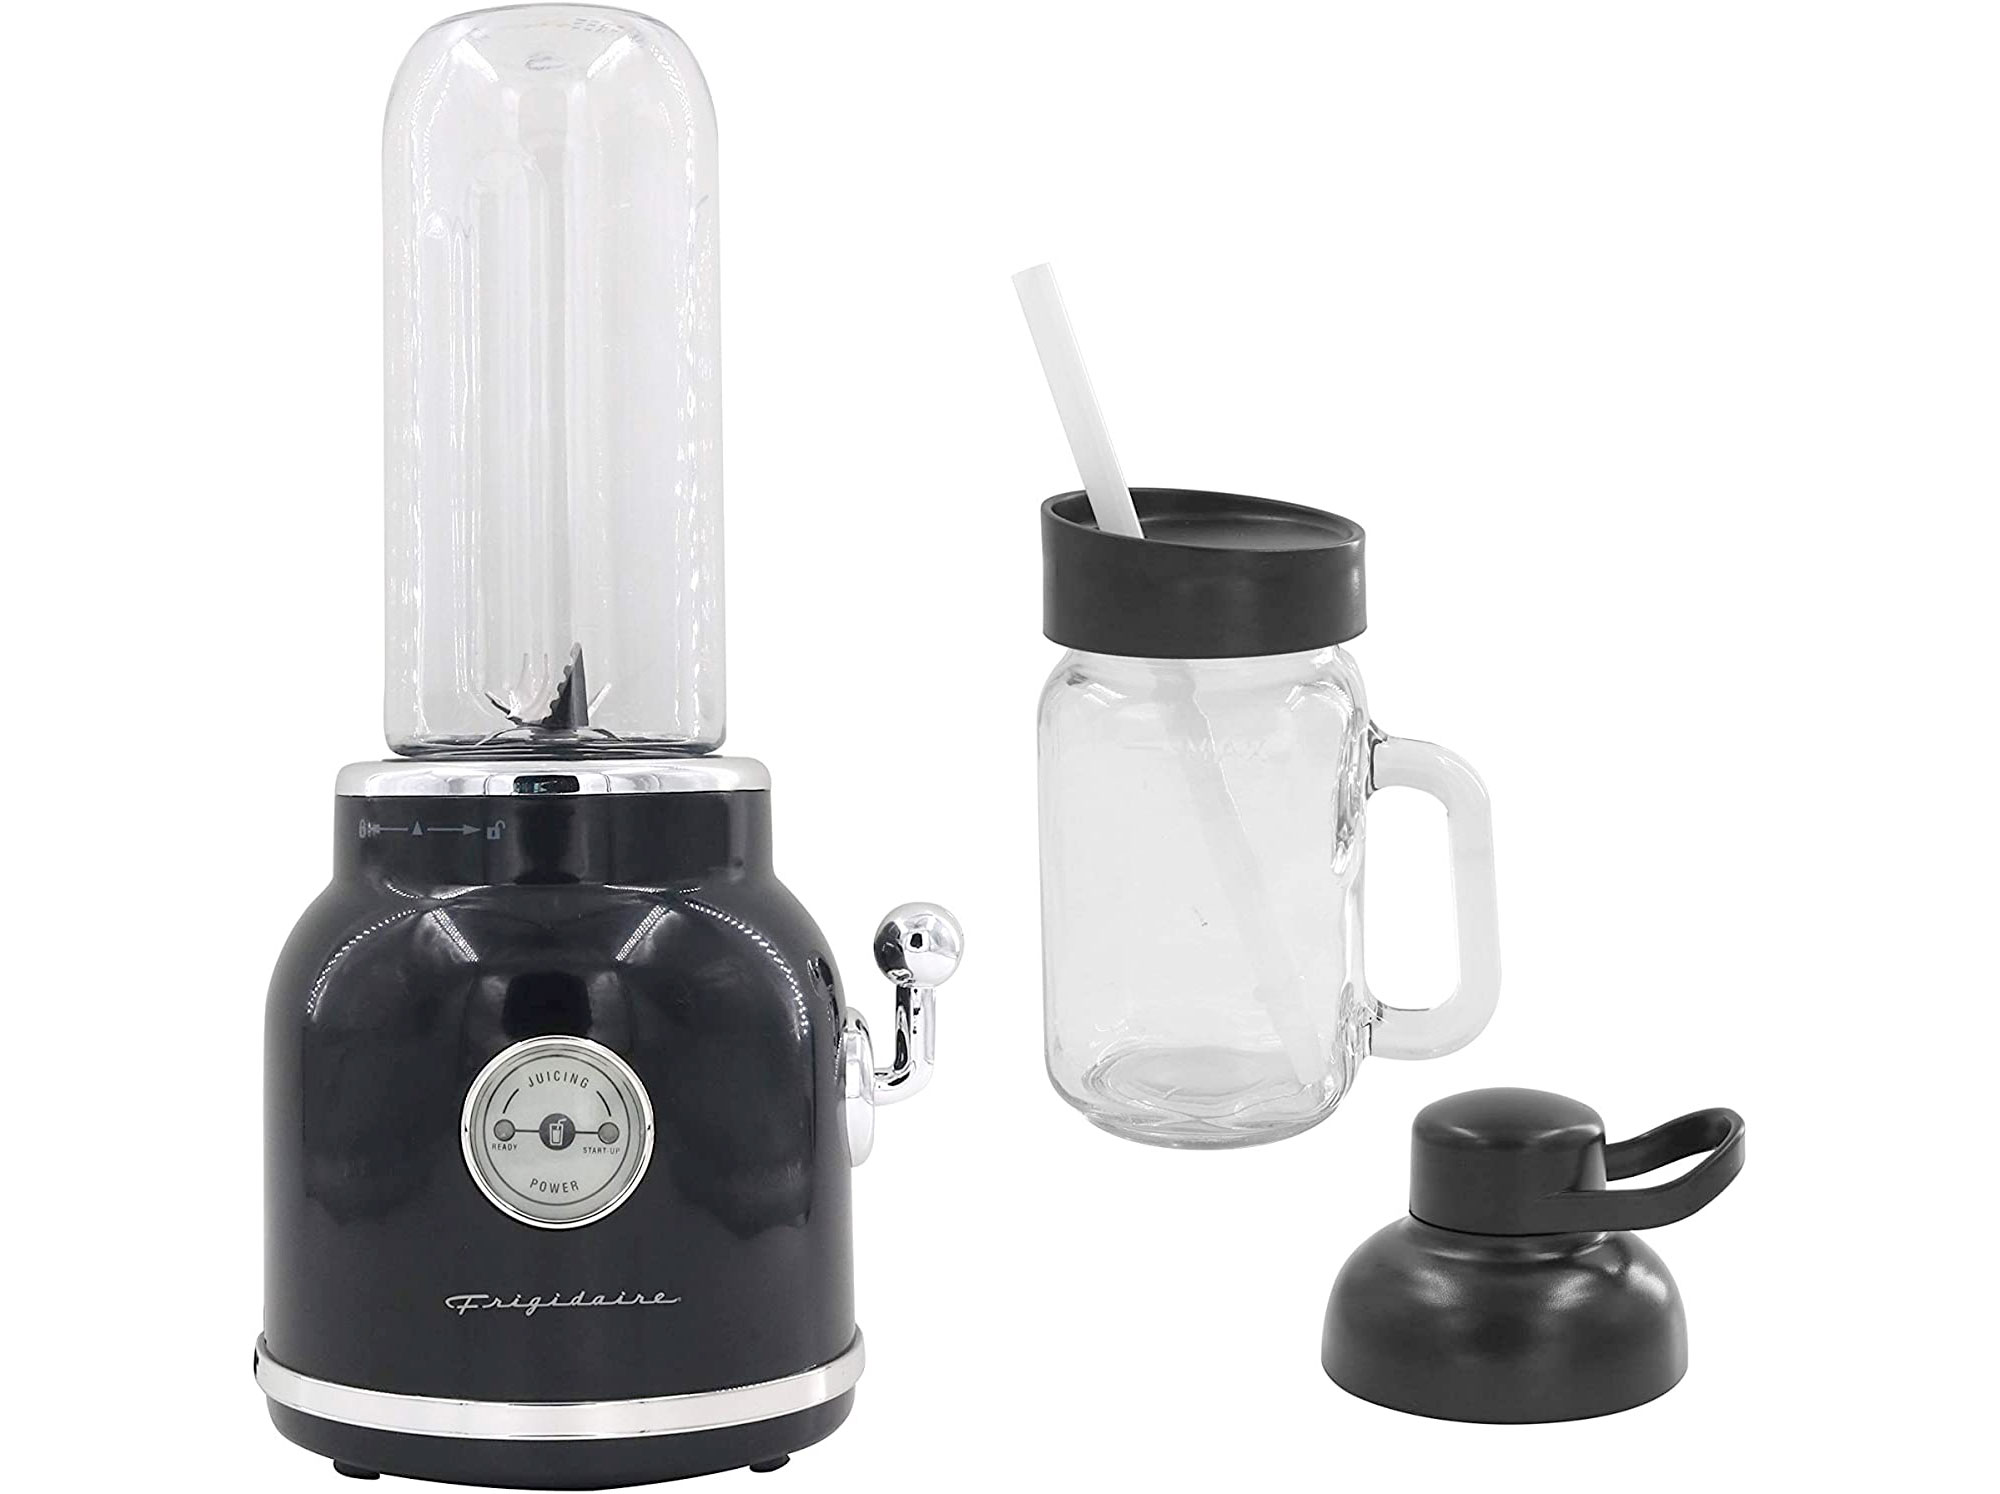 Amazon:Frigidaire Smoothie Maker只賣$27